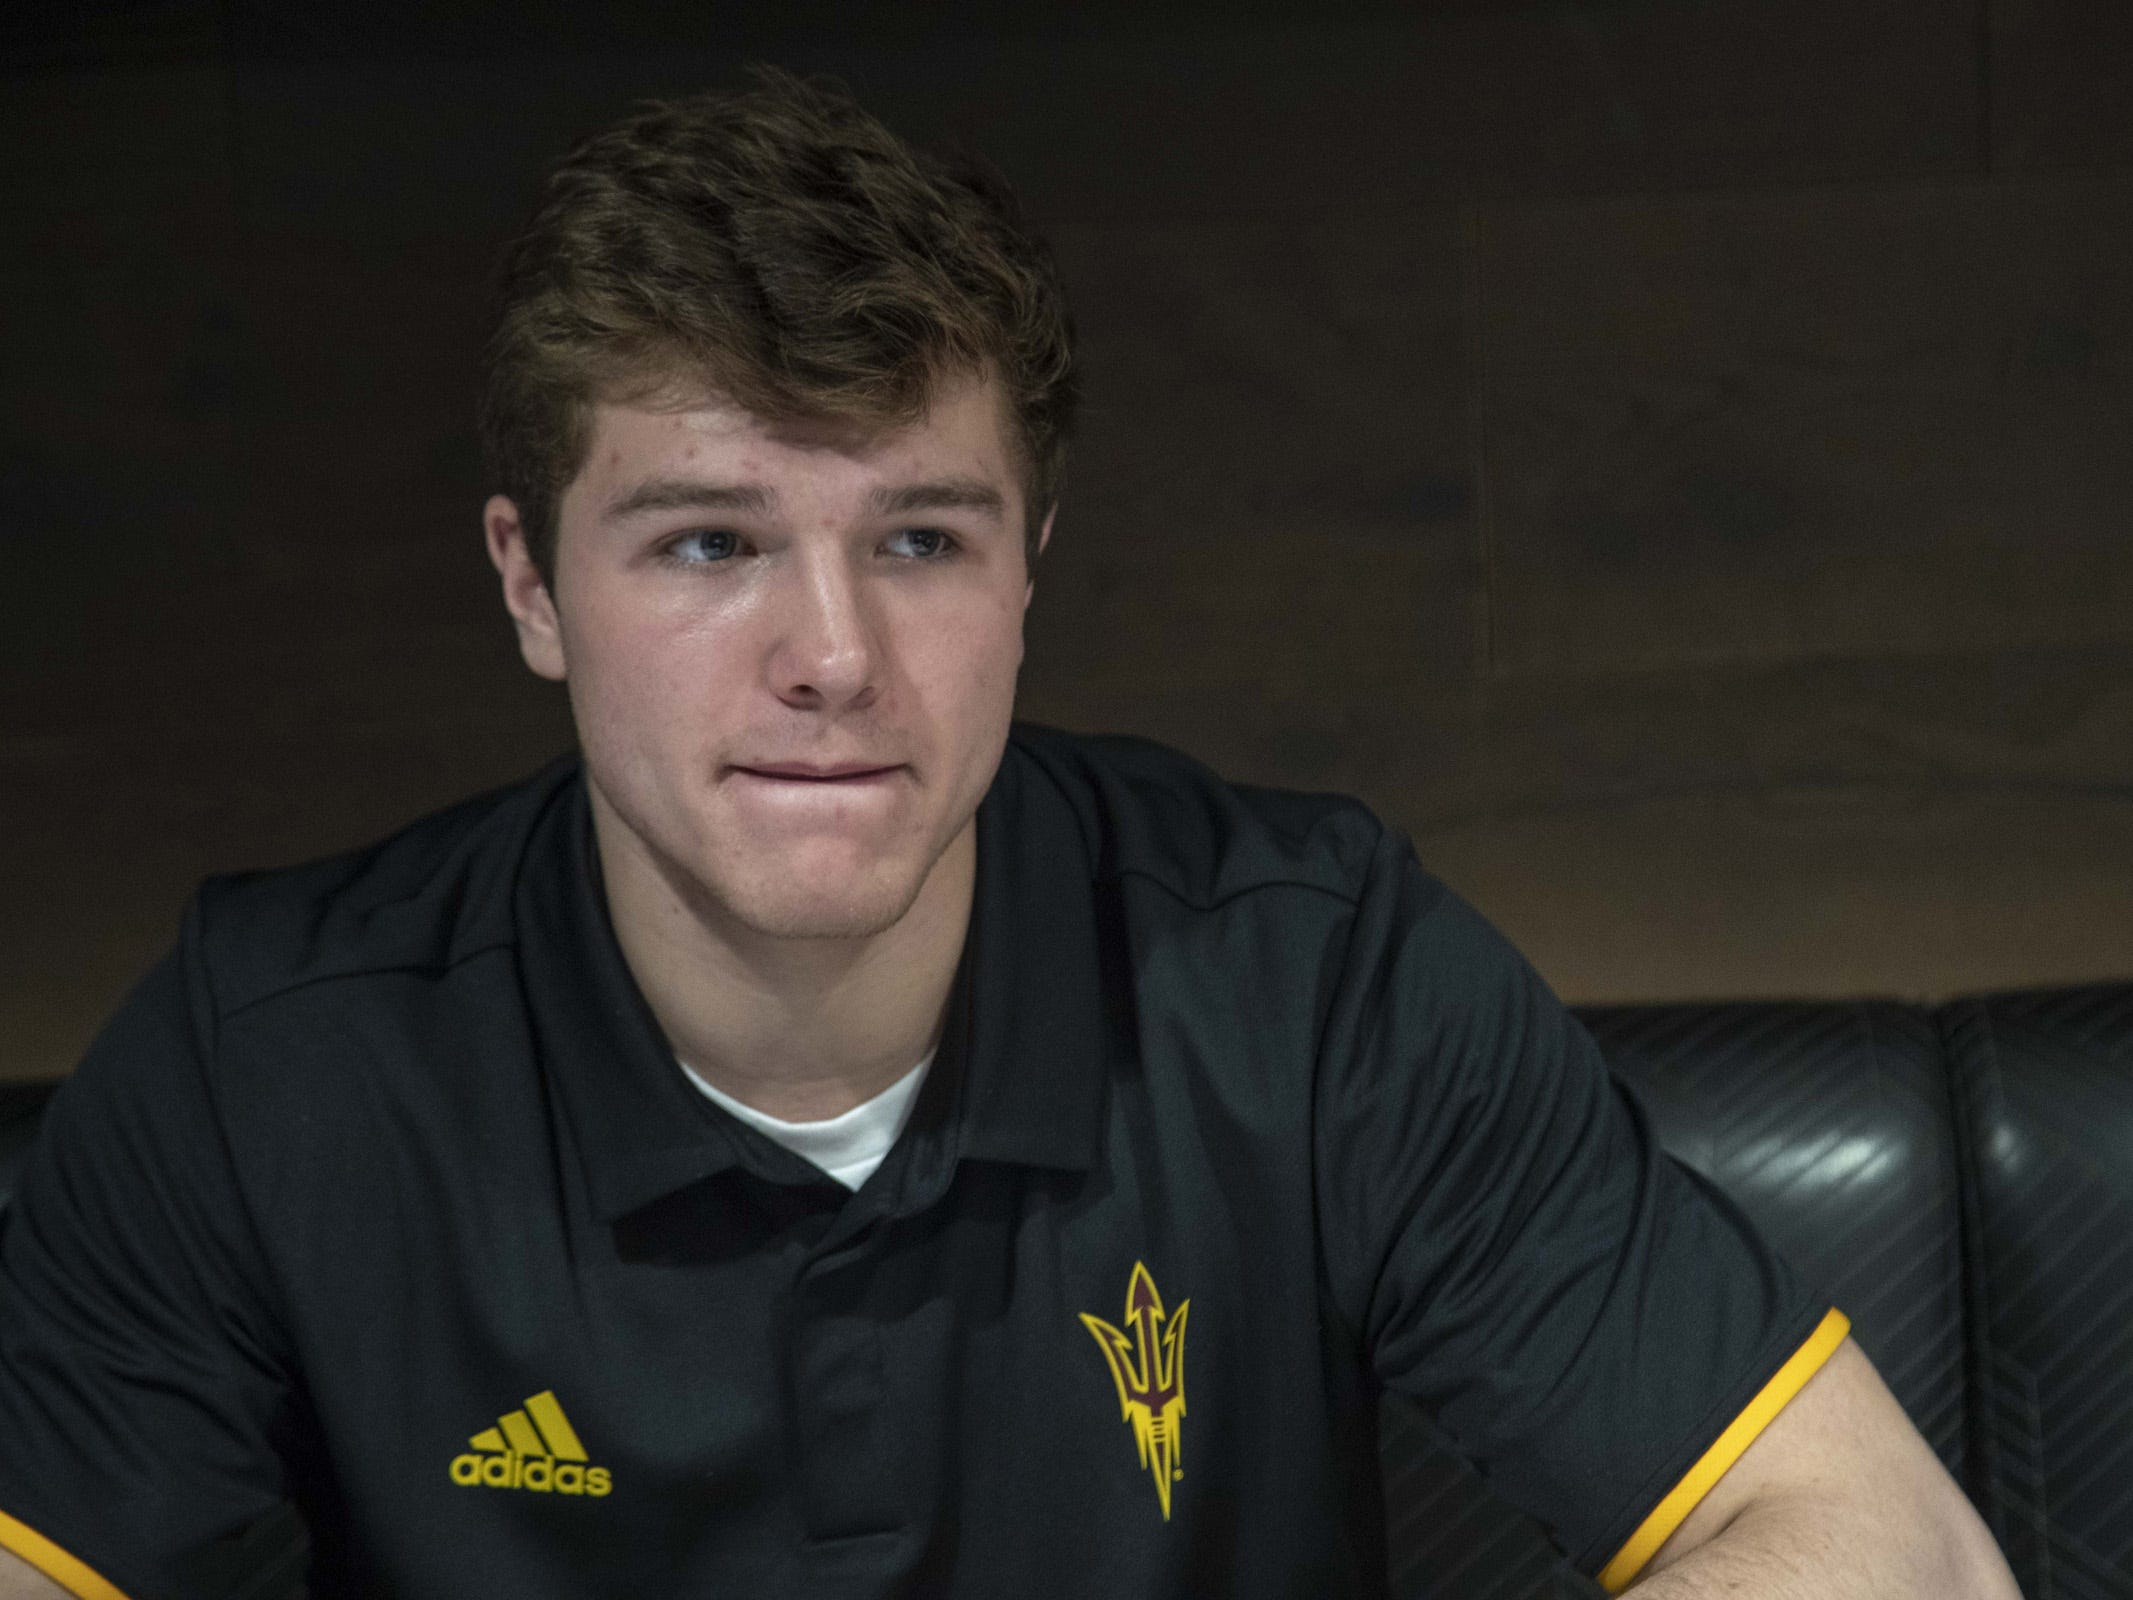 ASU Quarterback, Ethan Long during the ASU Spring Football media day at ASU Tempe campus.